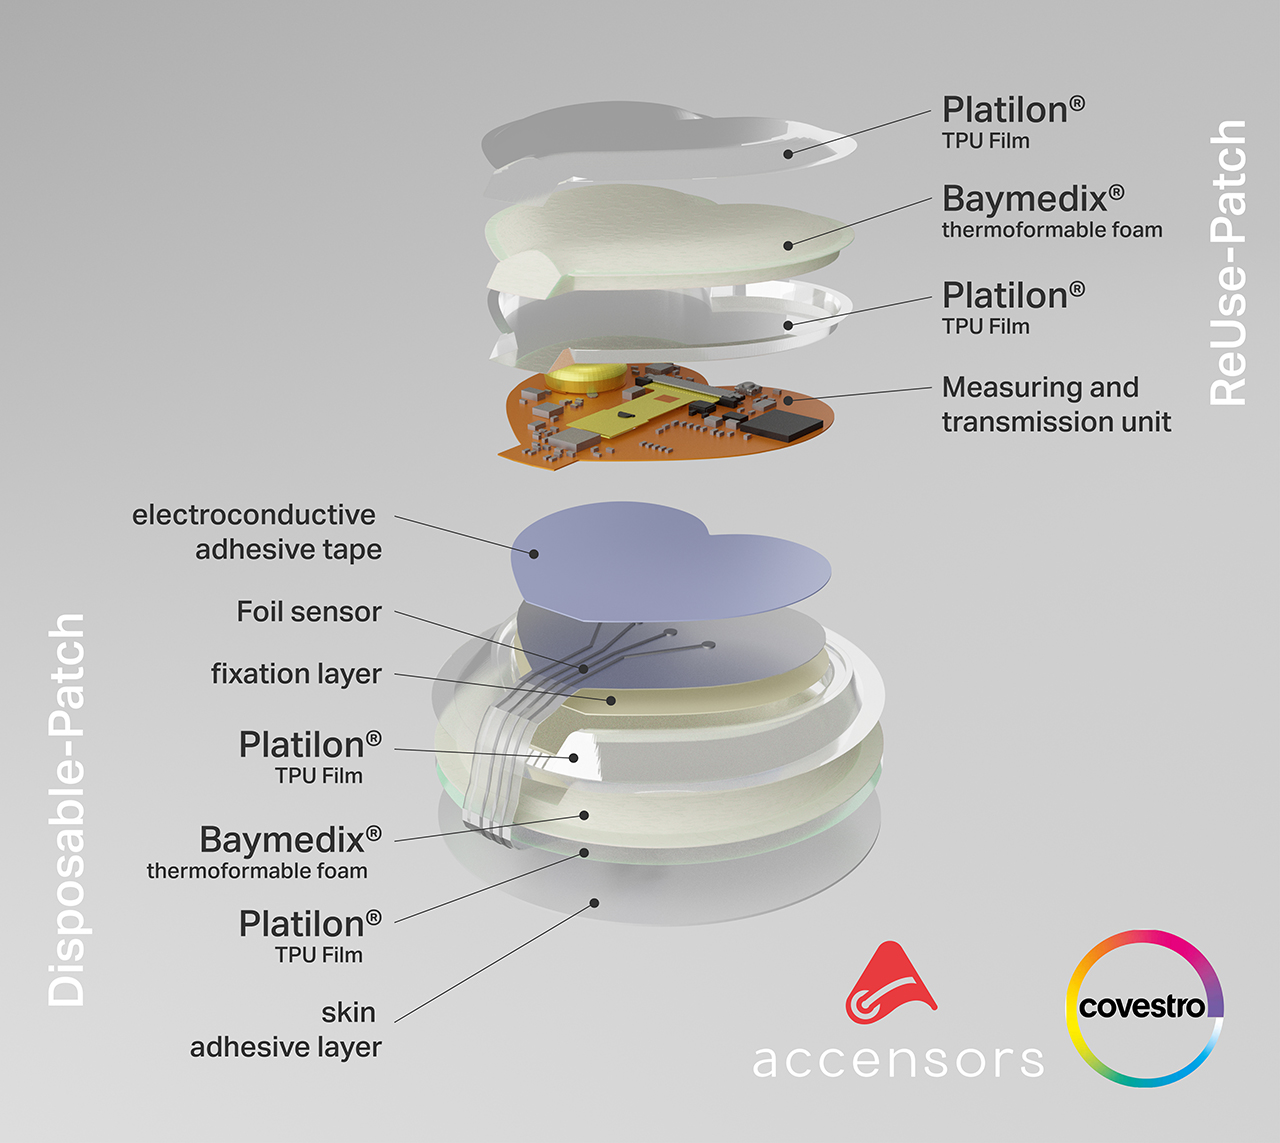 In collaboration with accensors, Covestro has developed a concept for wearable smart patches in medical diagnosis based on polyurethane materials. (Source: Covestro)